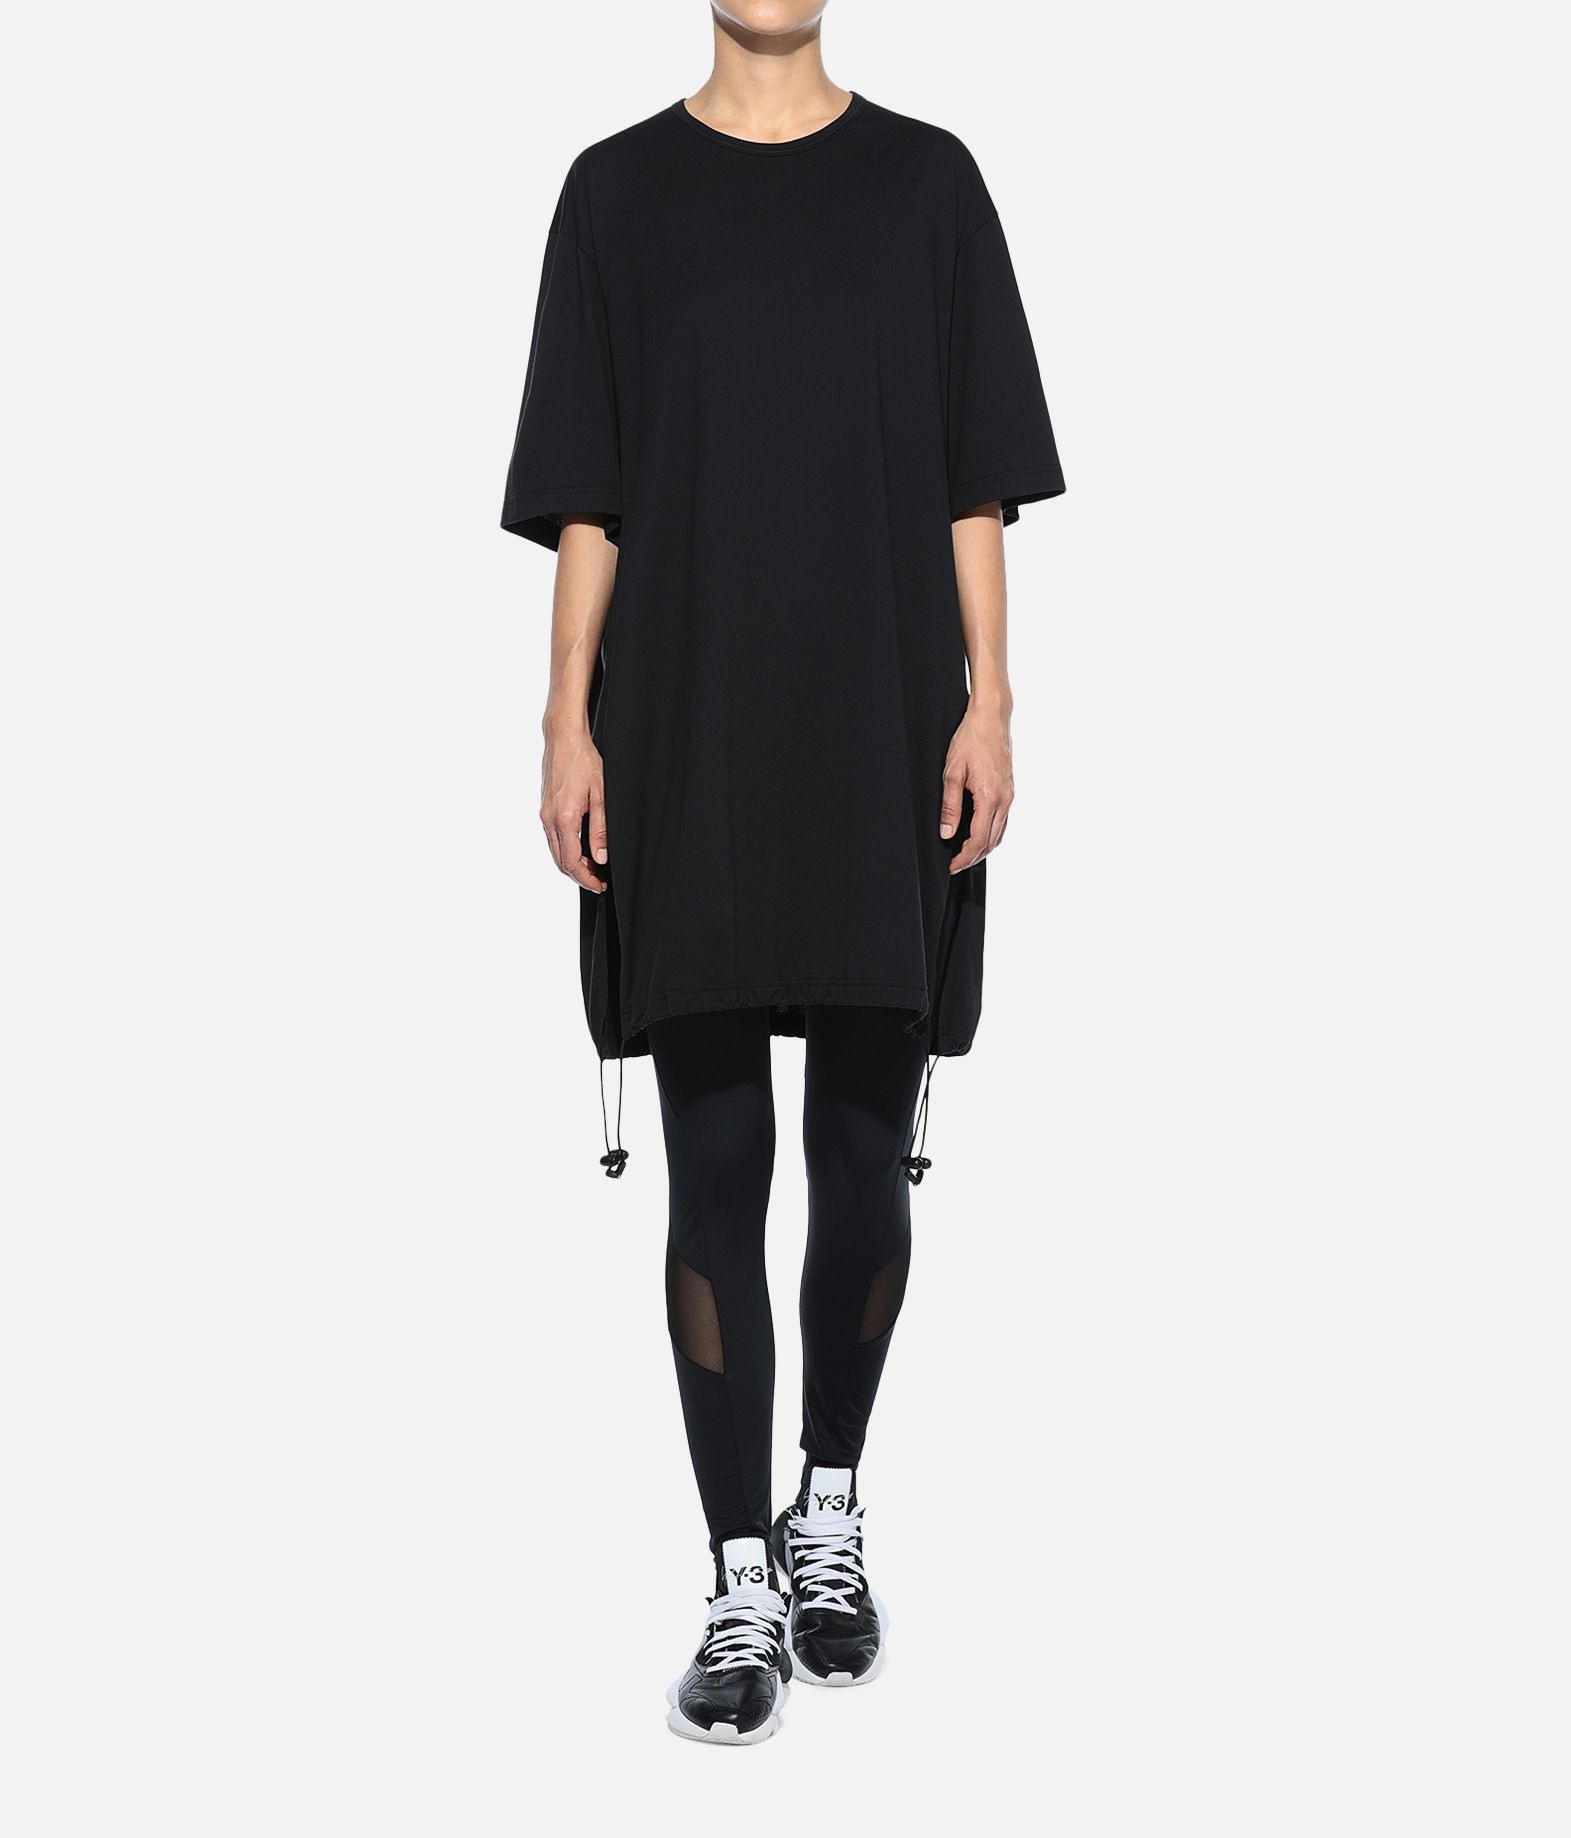 Y-3 Y-3 Drawstring Long Tee Short sleeve t-shirt Woman a